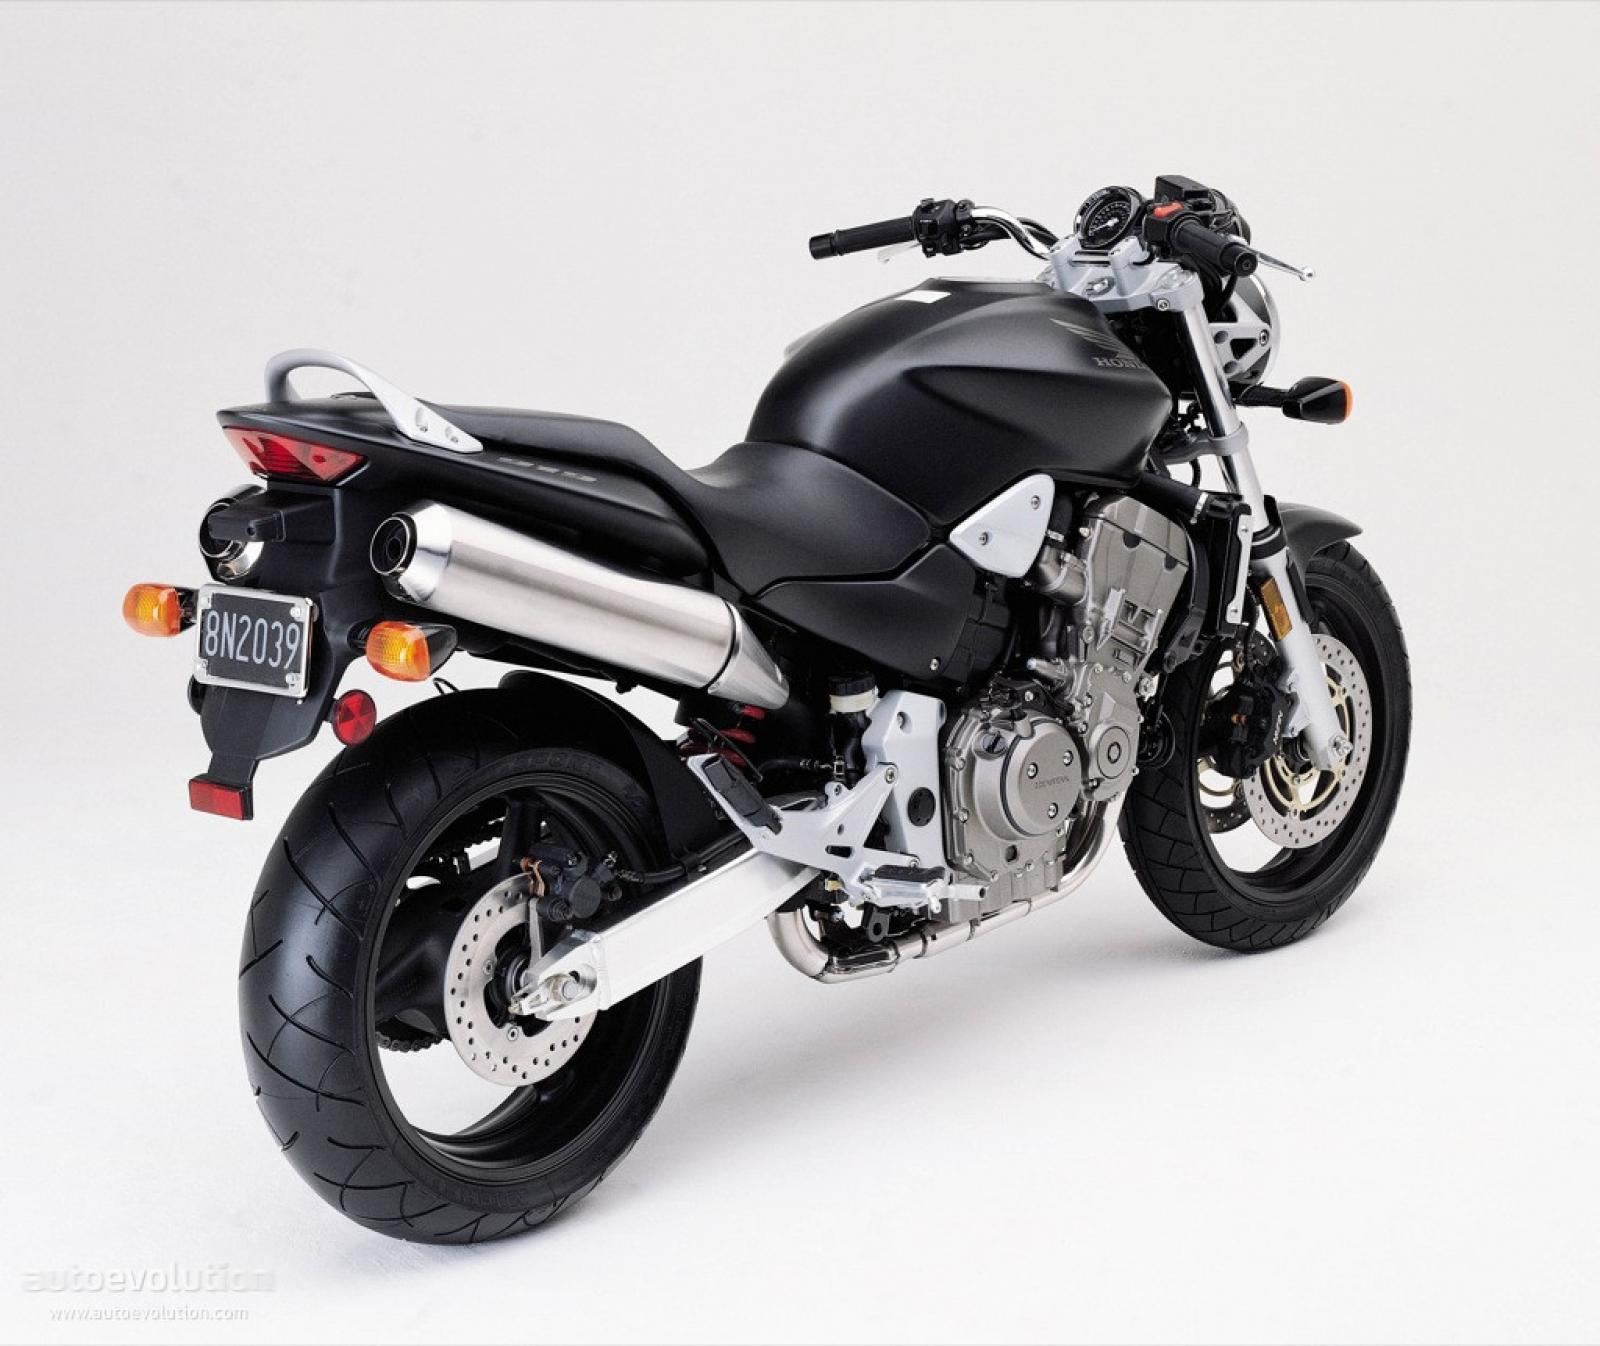 2006 honda hornet 900 moto zombdrive com. Black Bedroom Furniture Sets. Home Design Ideas